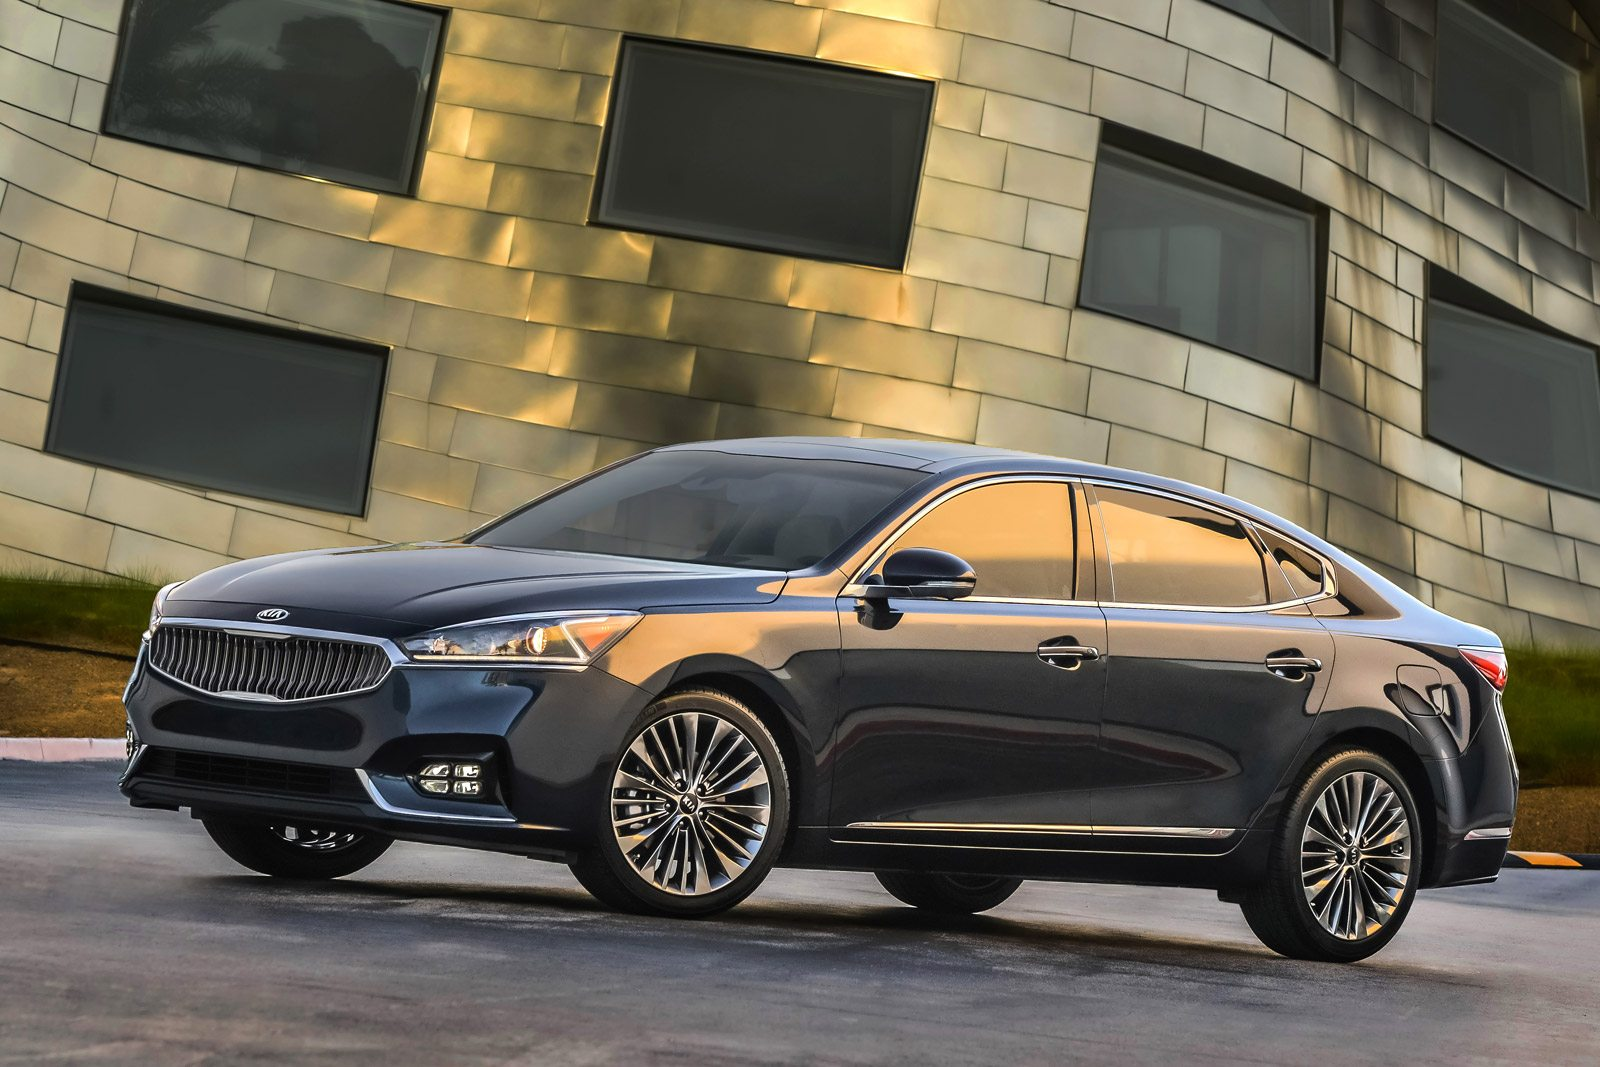 The kia cadenza rises to the occasion taking highest ranked in the large car segment the korean automaker s sedan beat out the nissan maxima and dodge